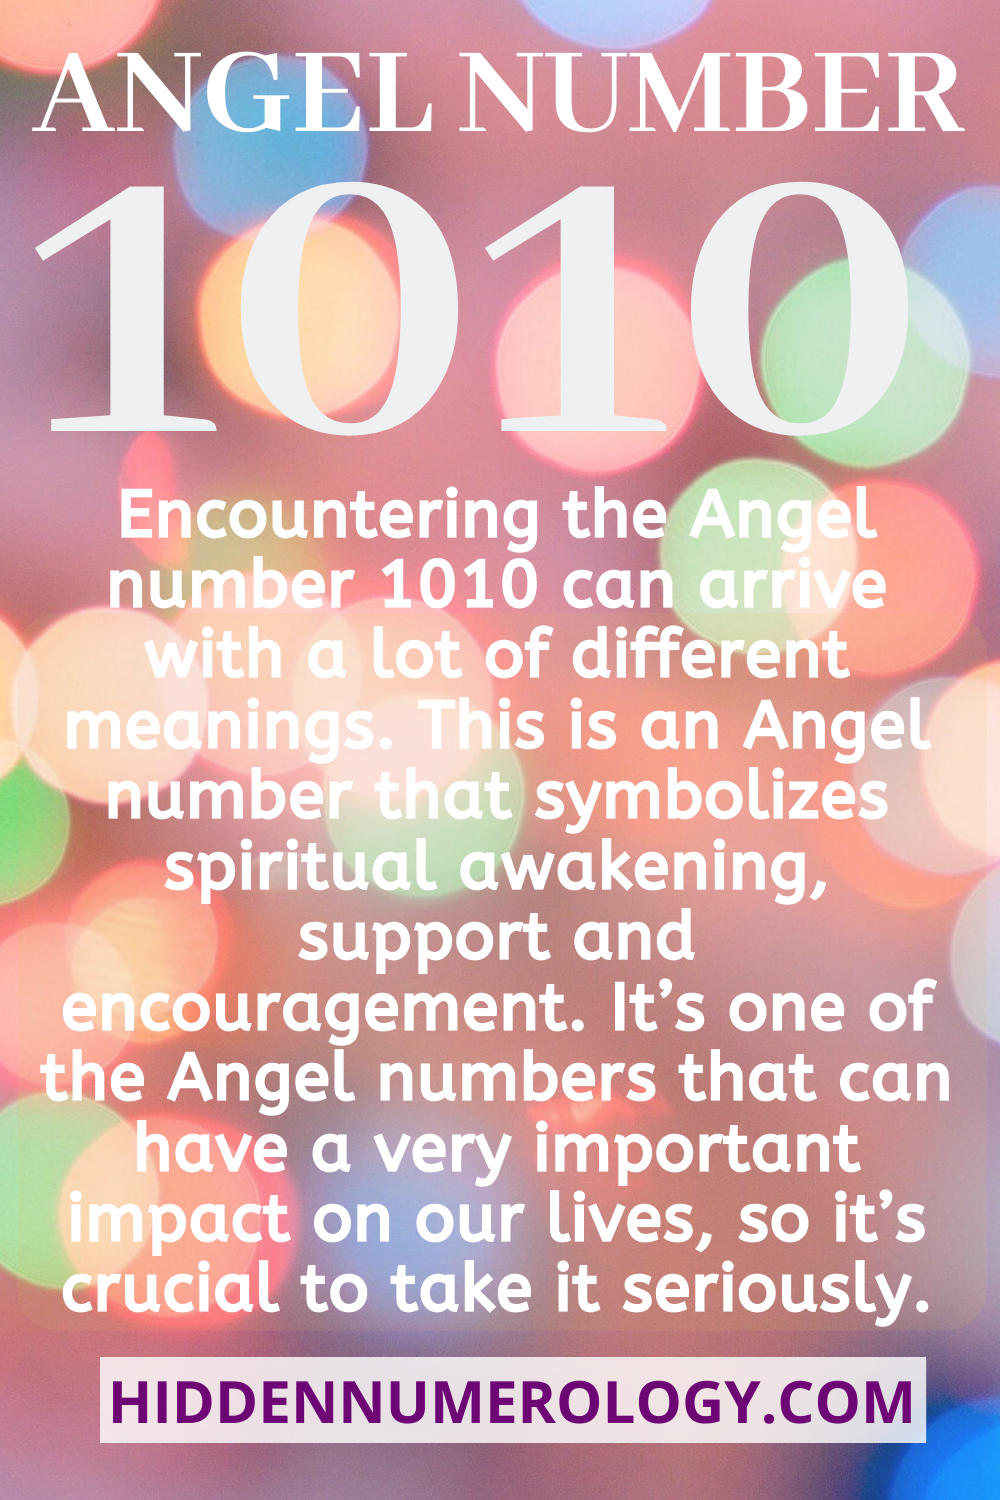 1010 Meaning The Meaning of 1010 1010 Angel Number Seeing 1010? Angel number 1010 symbolizes Angel number 1010 in Love and relationships #1010meaning #1010angelnumber #angelnumber1010